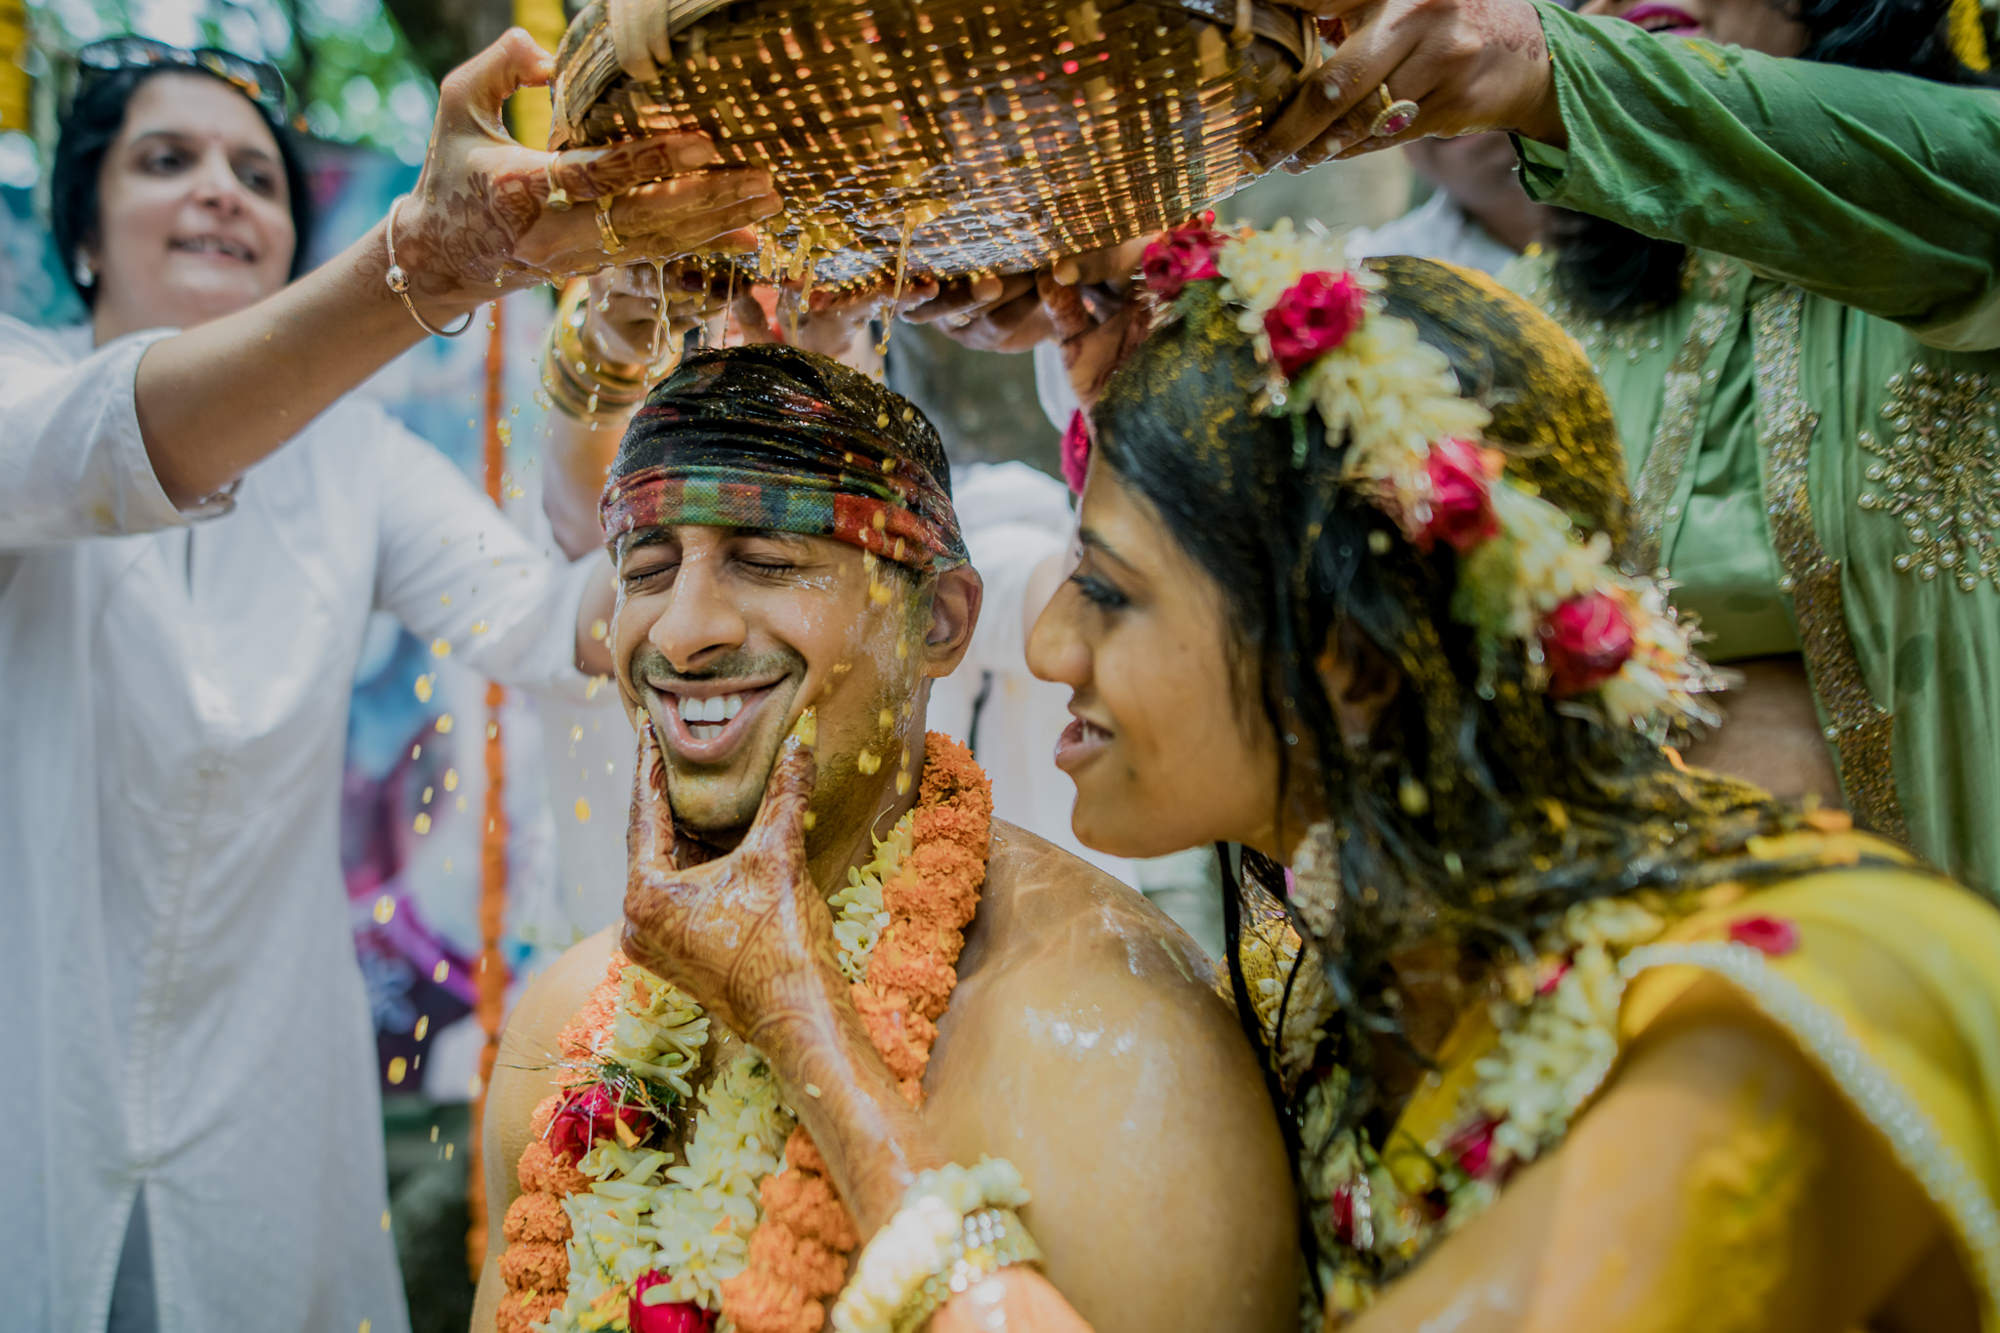 Fun moment between bride and groom - photo by RImi Sen